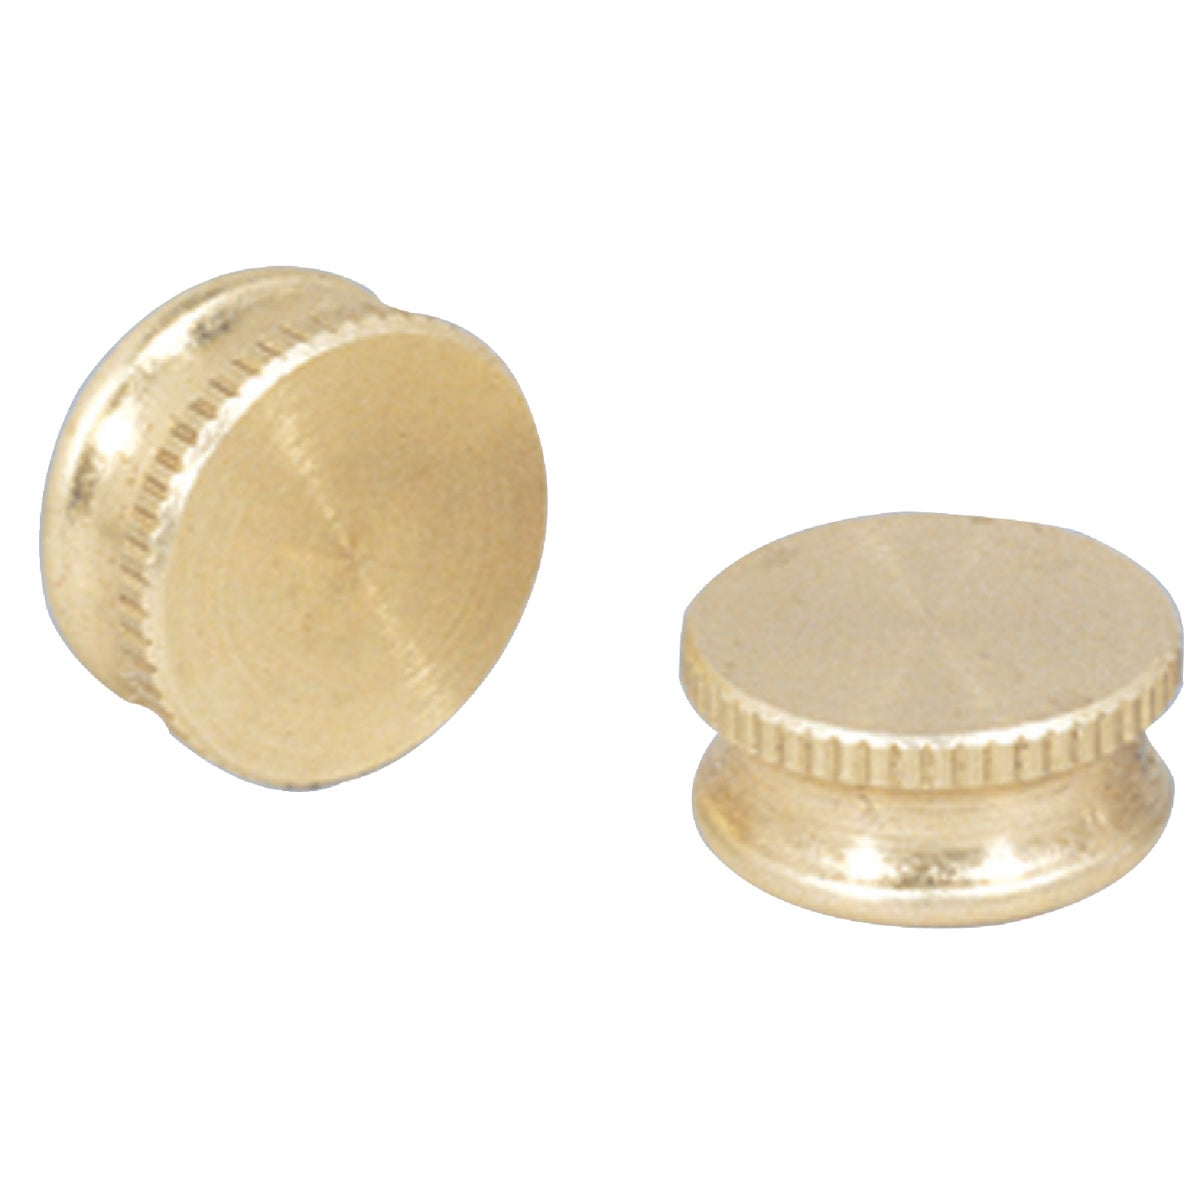 BRASS LOCK-UP CAP - 70169 by Westinghouse Lightng